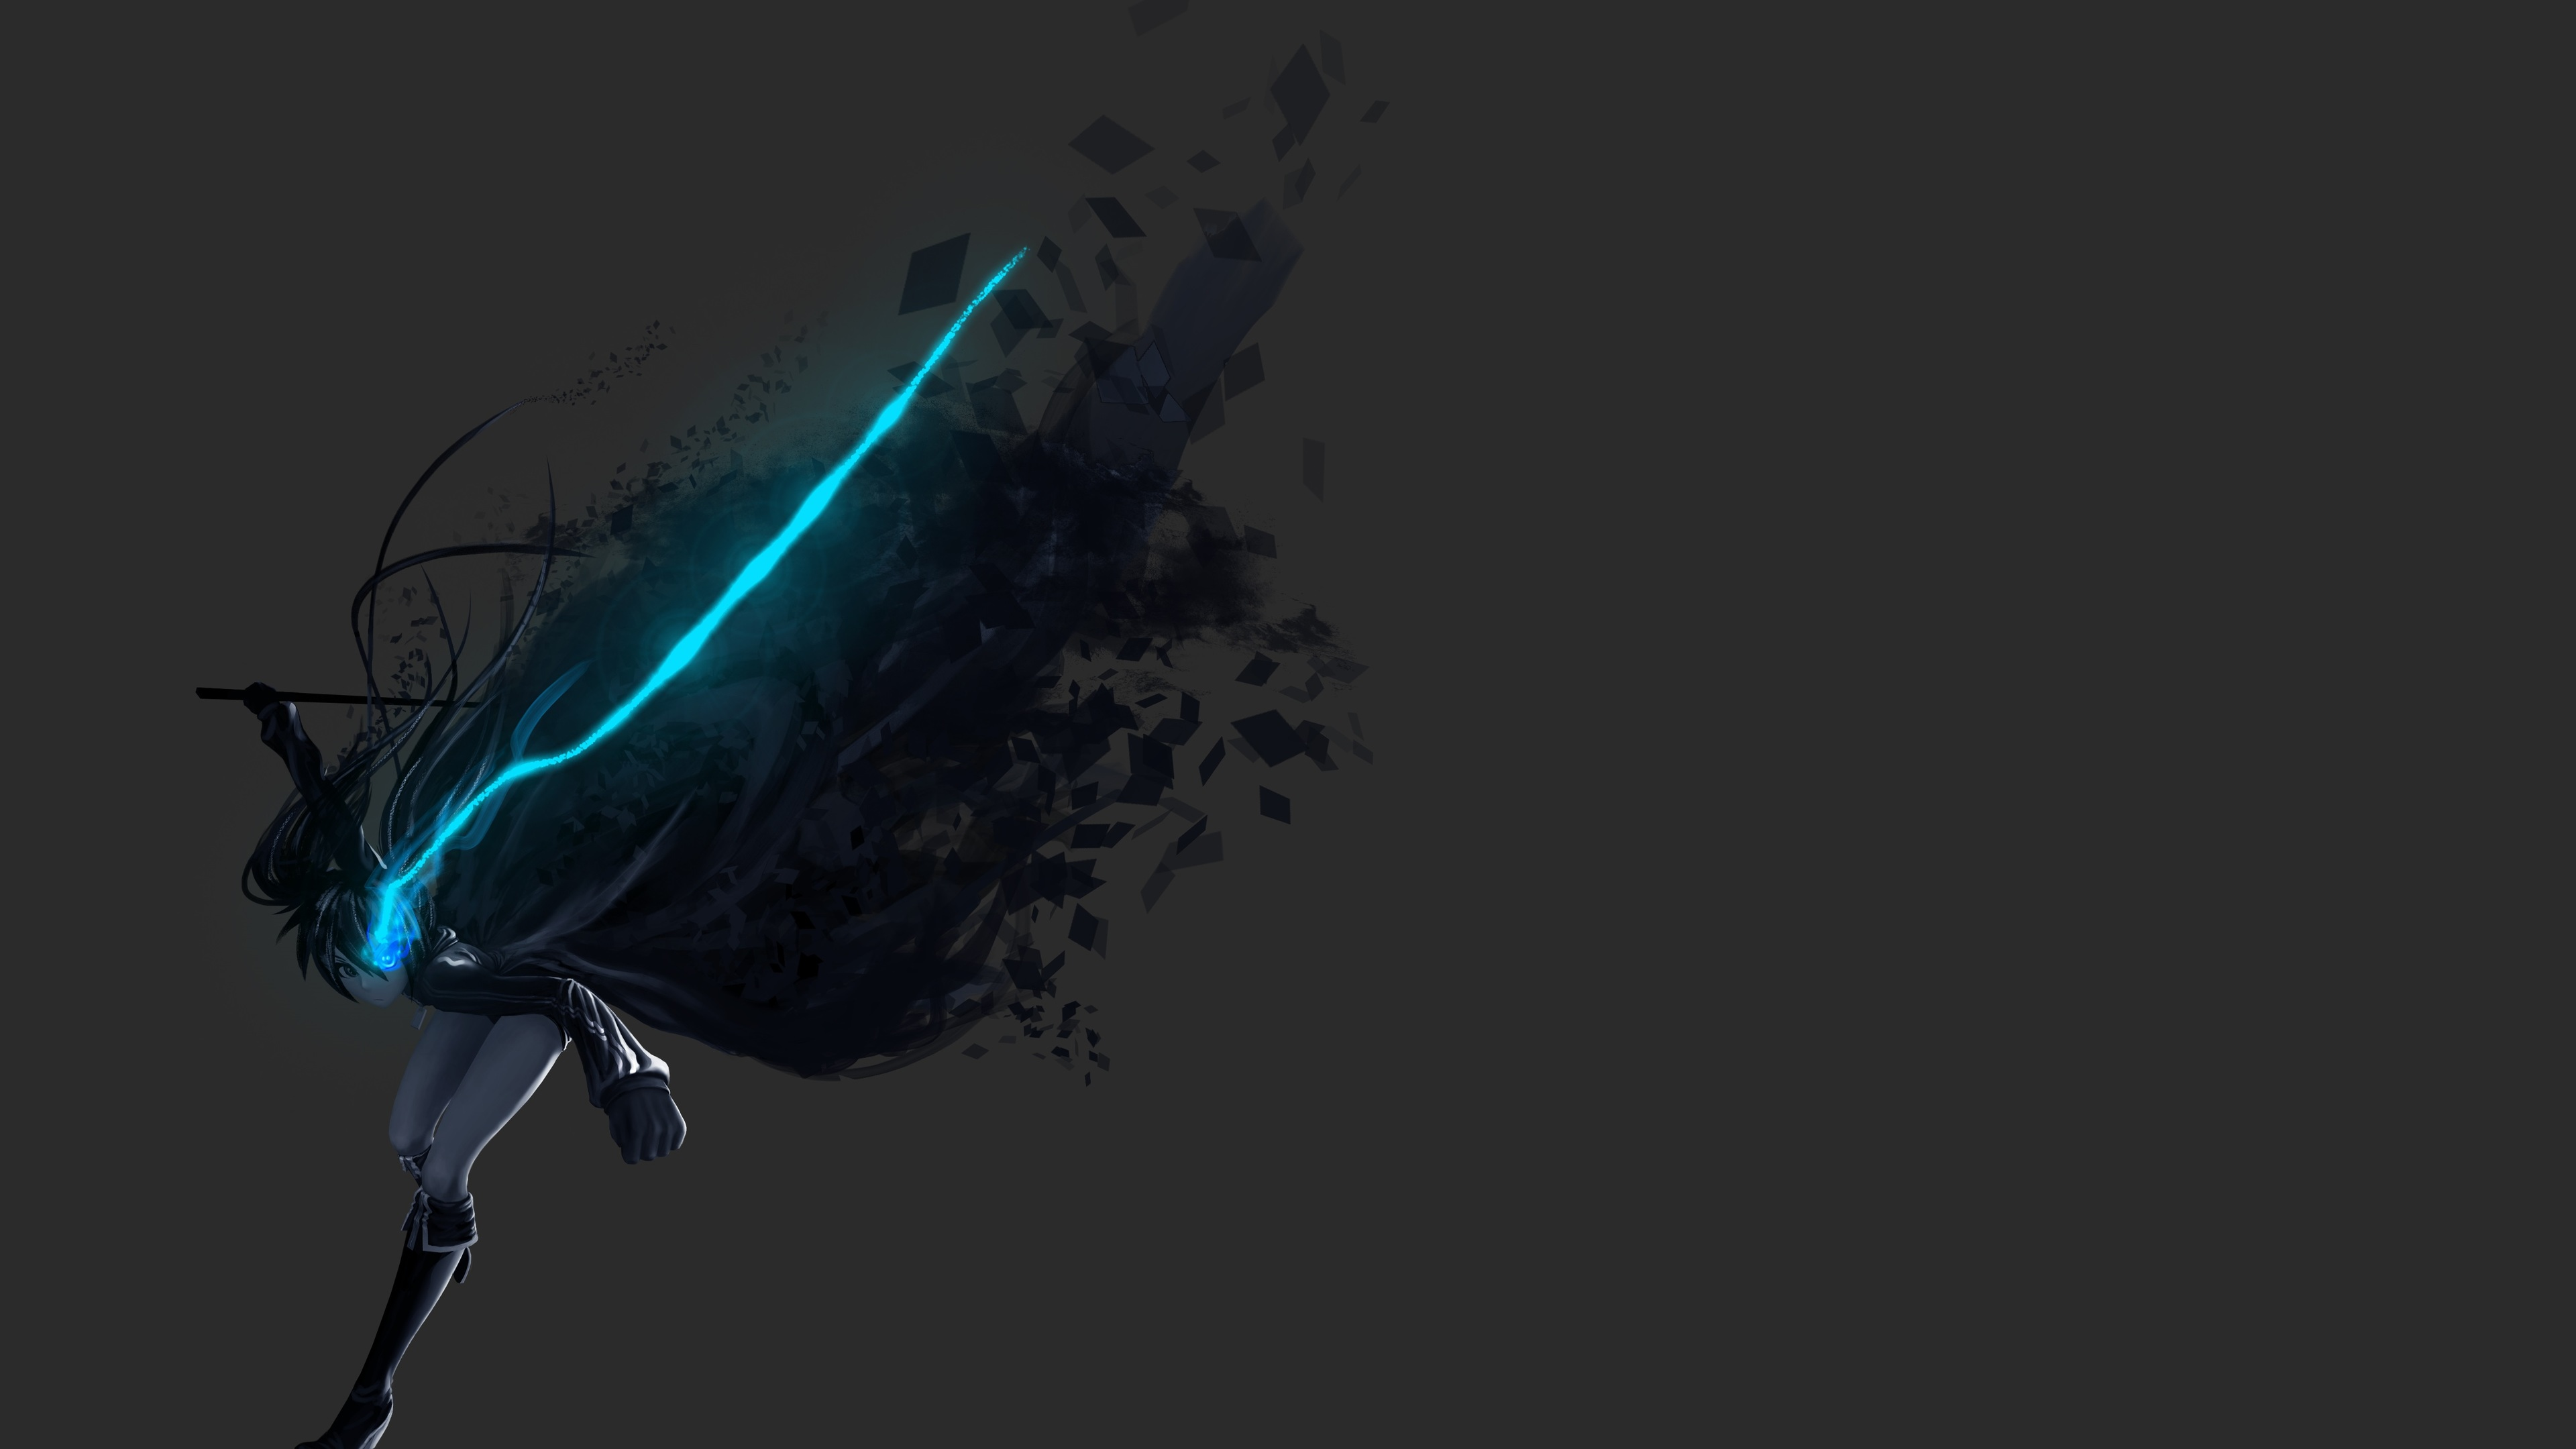 black rock shooter 4k 1541974651 - Black Rock Shooter 4k - hd-wallpapers, black rock shooter wallpapers, anime wallpapers, anime girl wallpapers, 4k-wallpapers